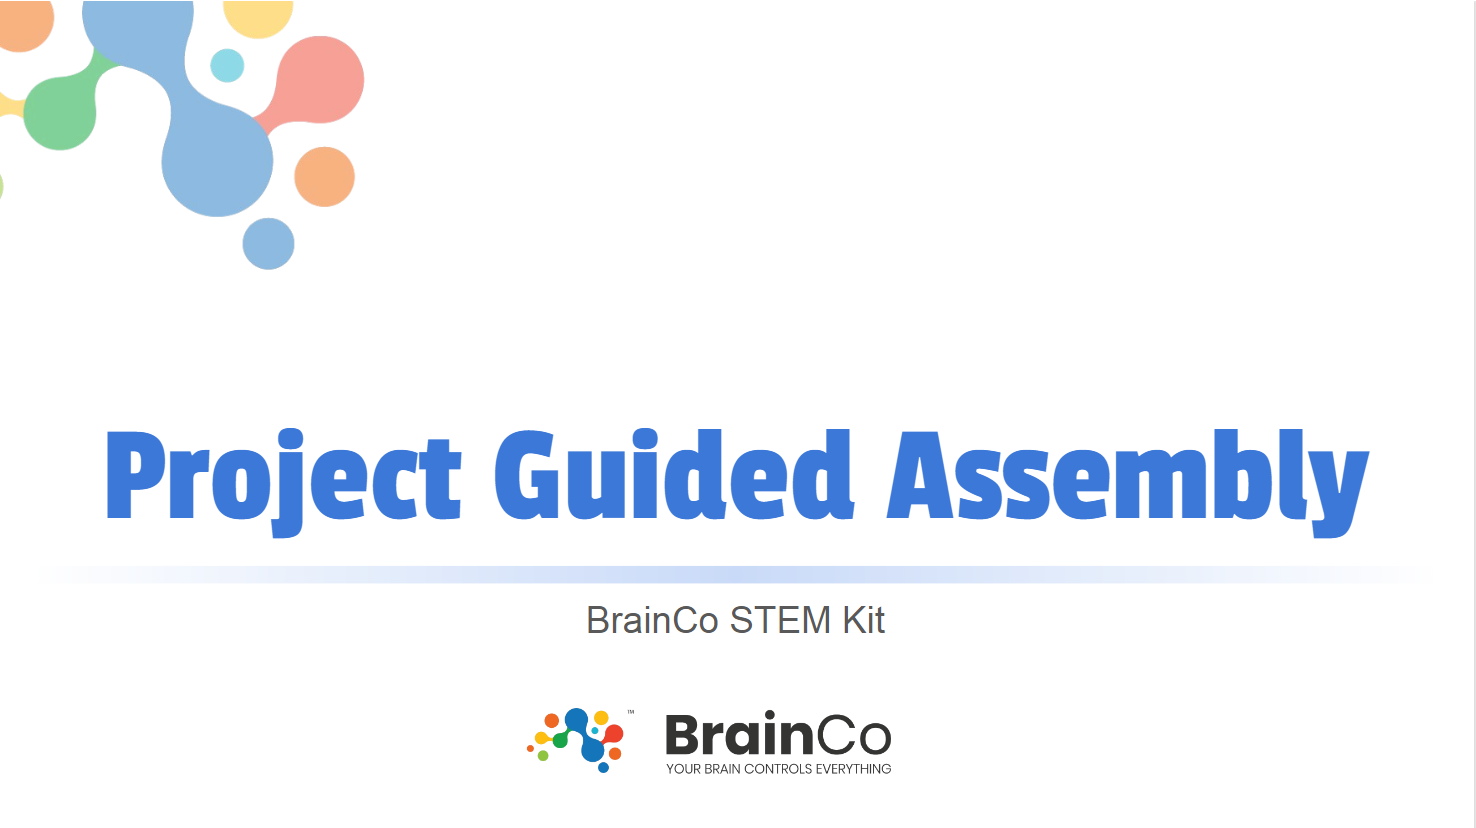 Project Guided Assembly